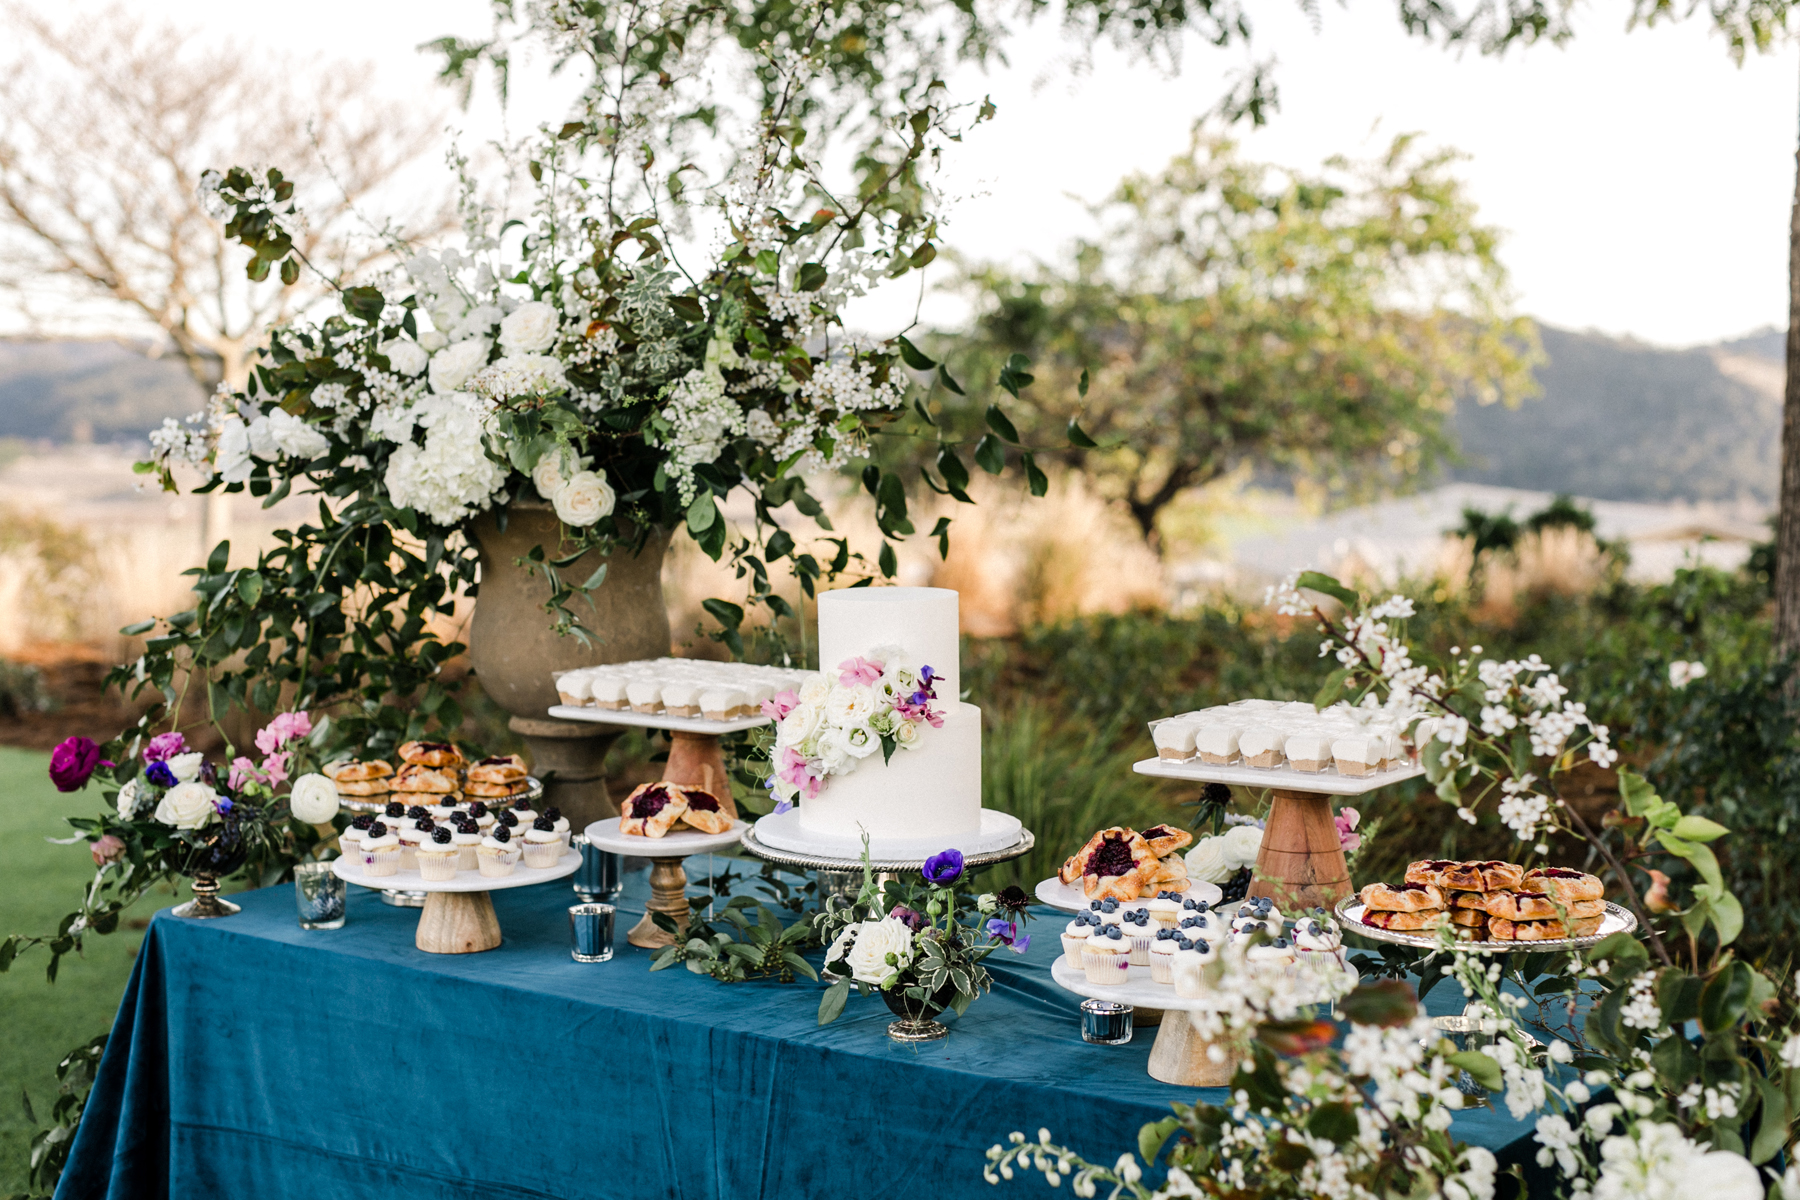 Whimsical Garden Wedding Cake Table